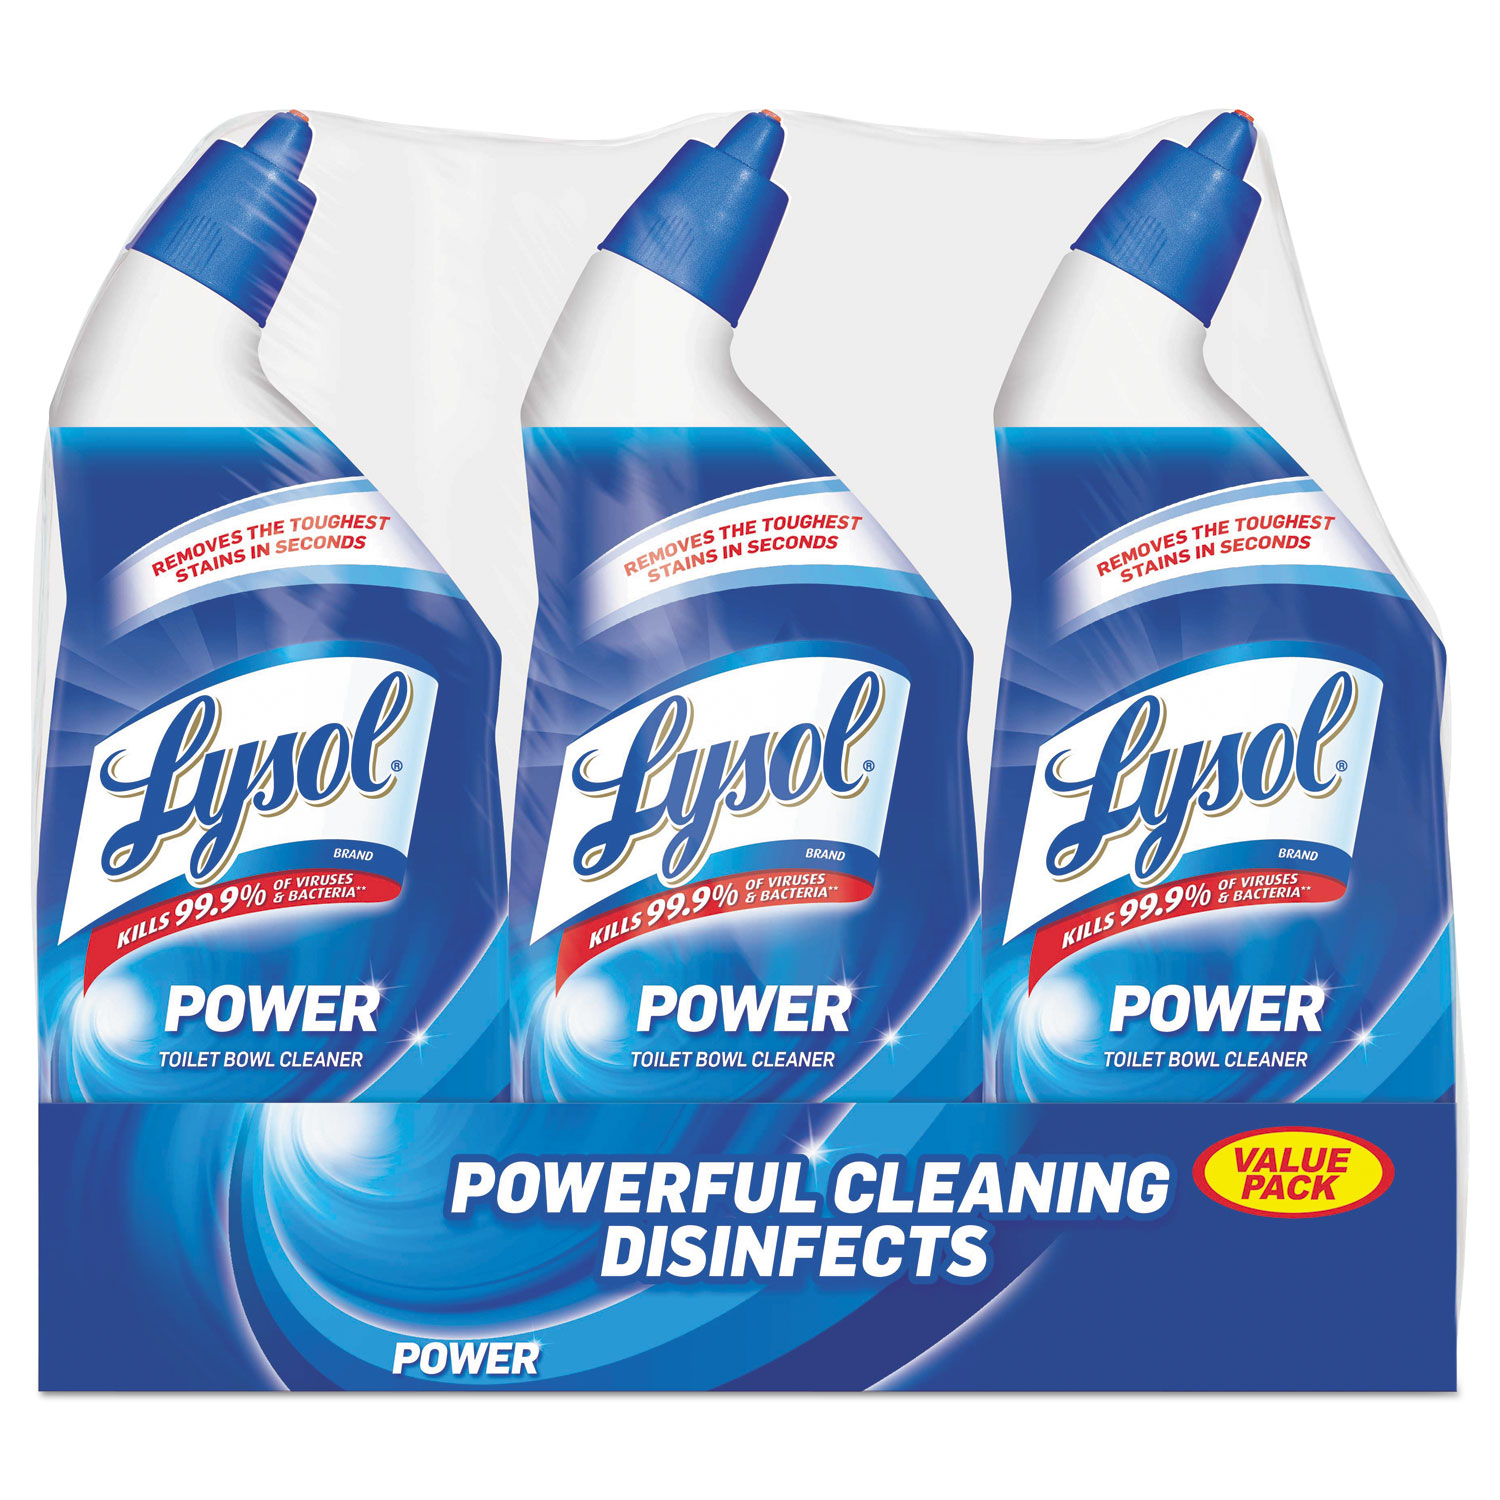 Lysol Hydrogen Peroxide Toilet Bowl Cleaner Msds